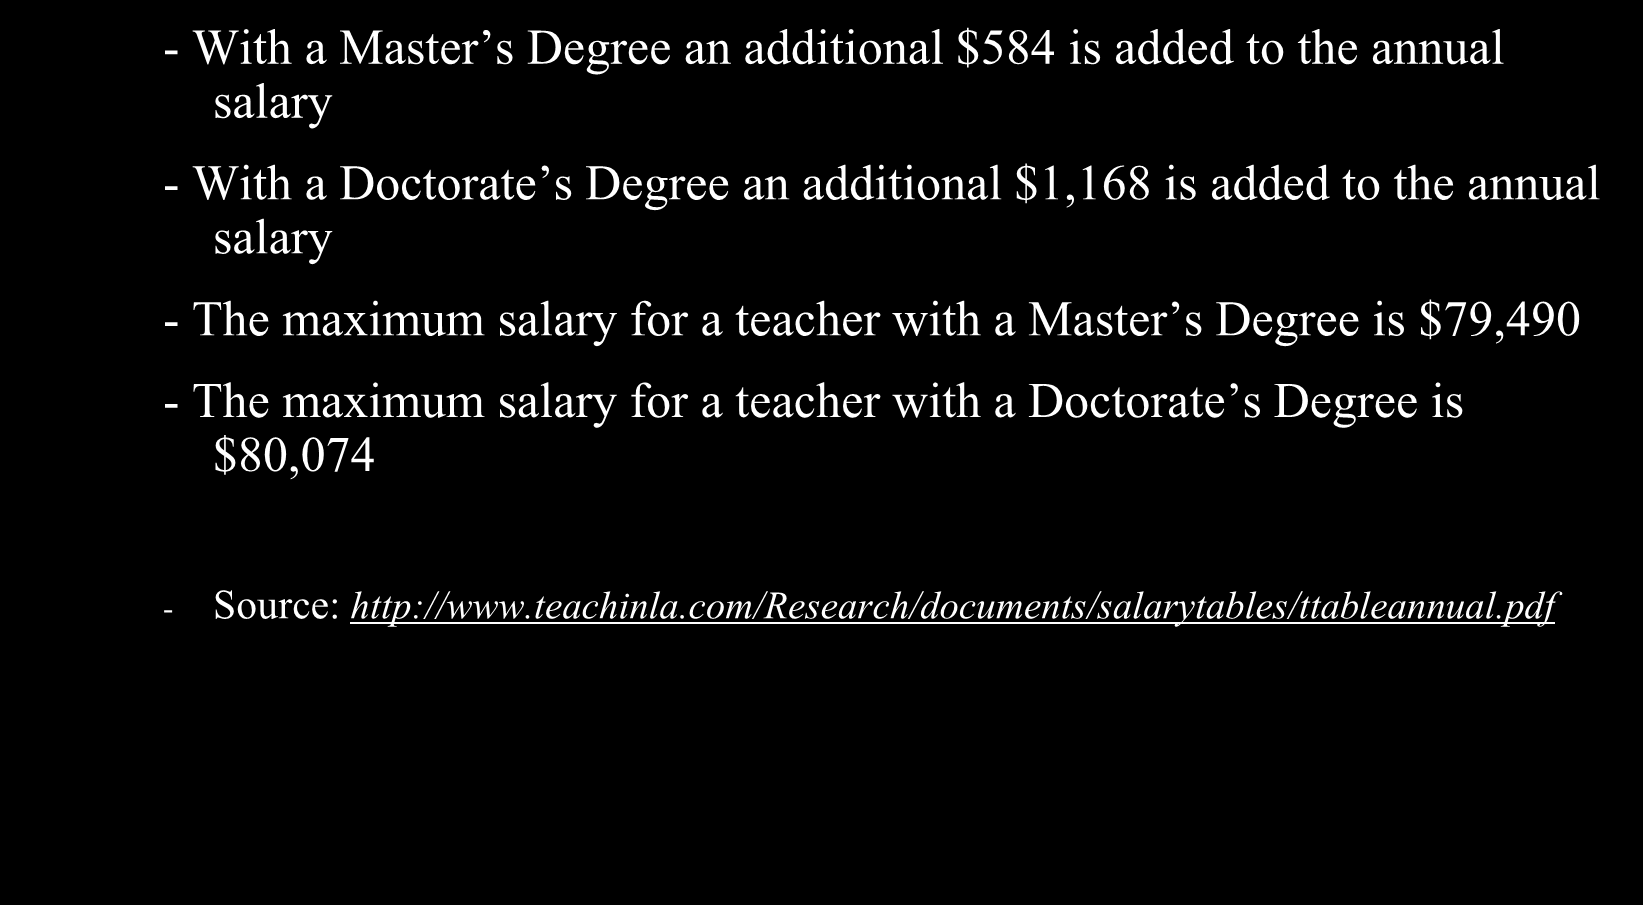 Do u have to write a book to get ur doctorate's degree?